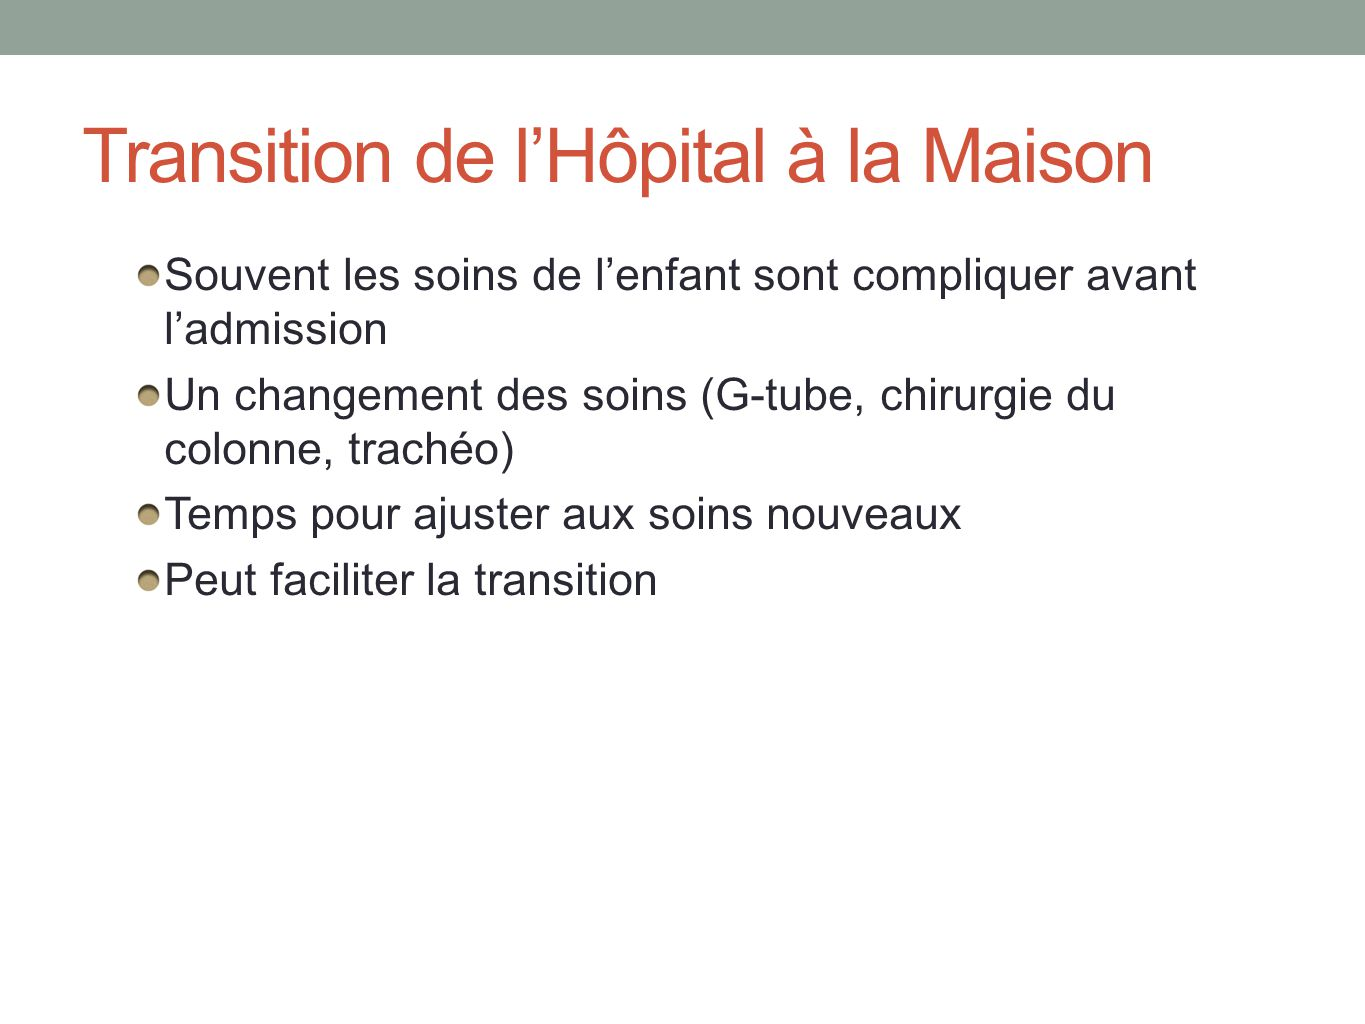 Transition de l'Hôpital à la Maison